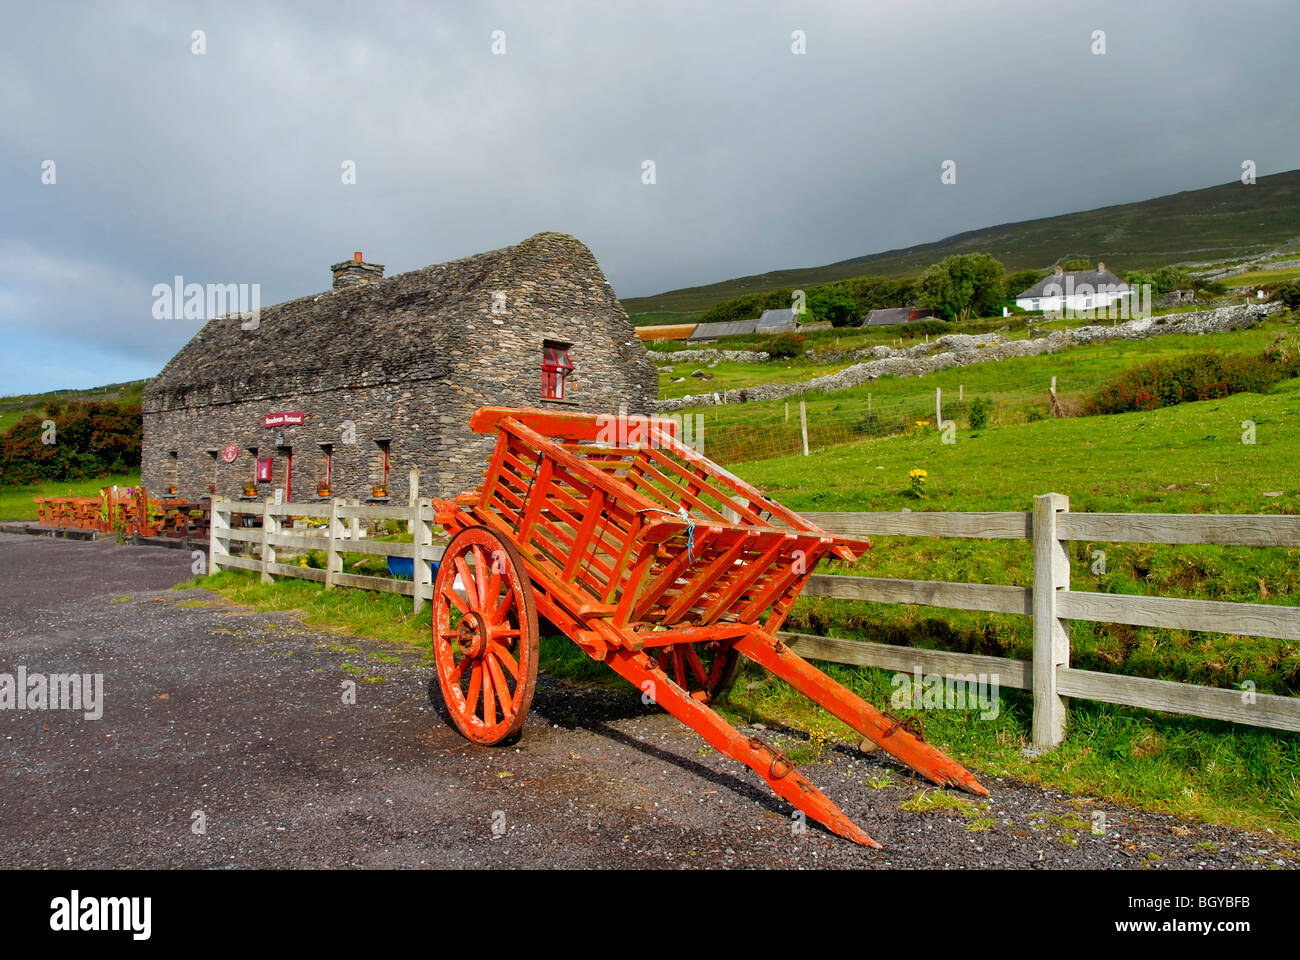 Dingle Halbinsel, Irland Stockbild